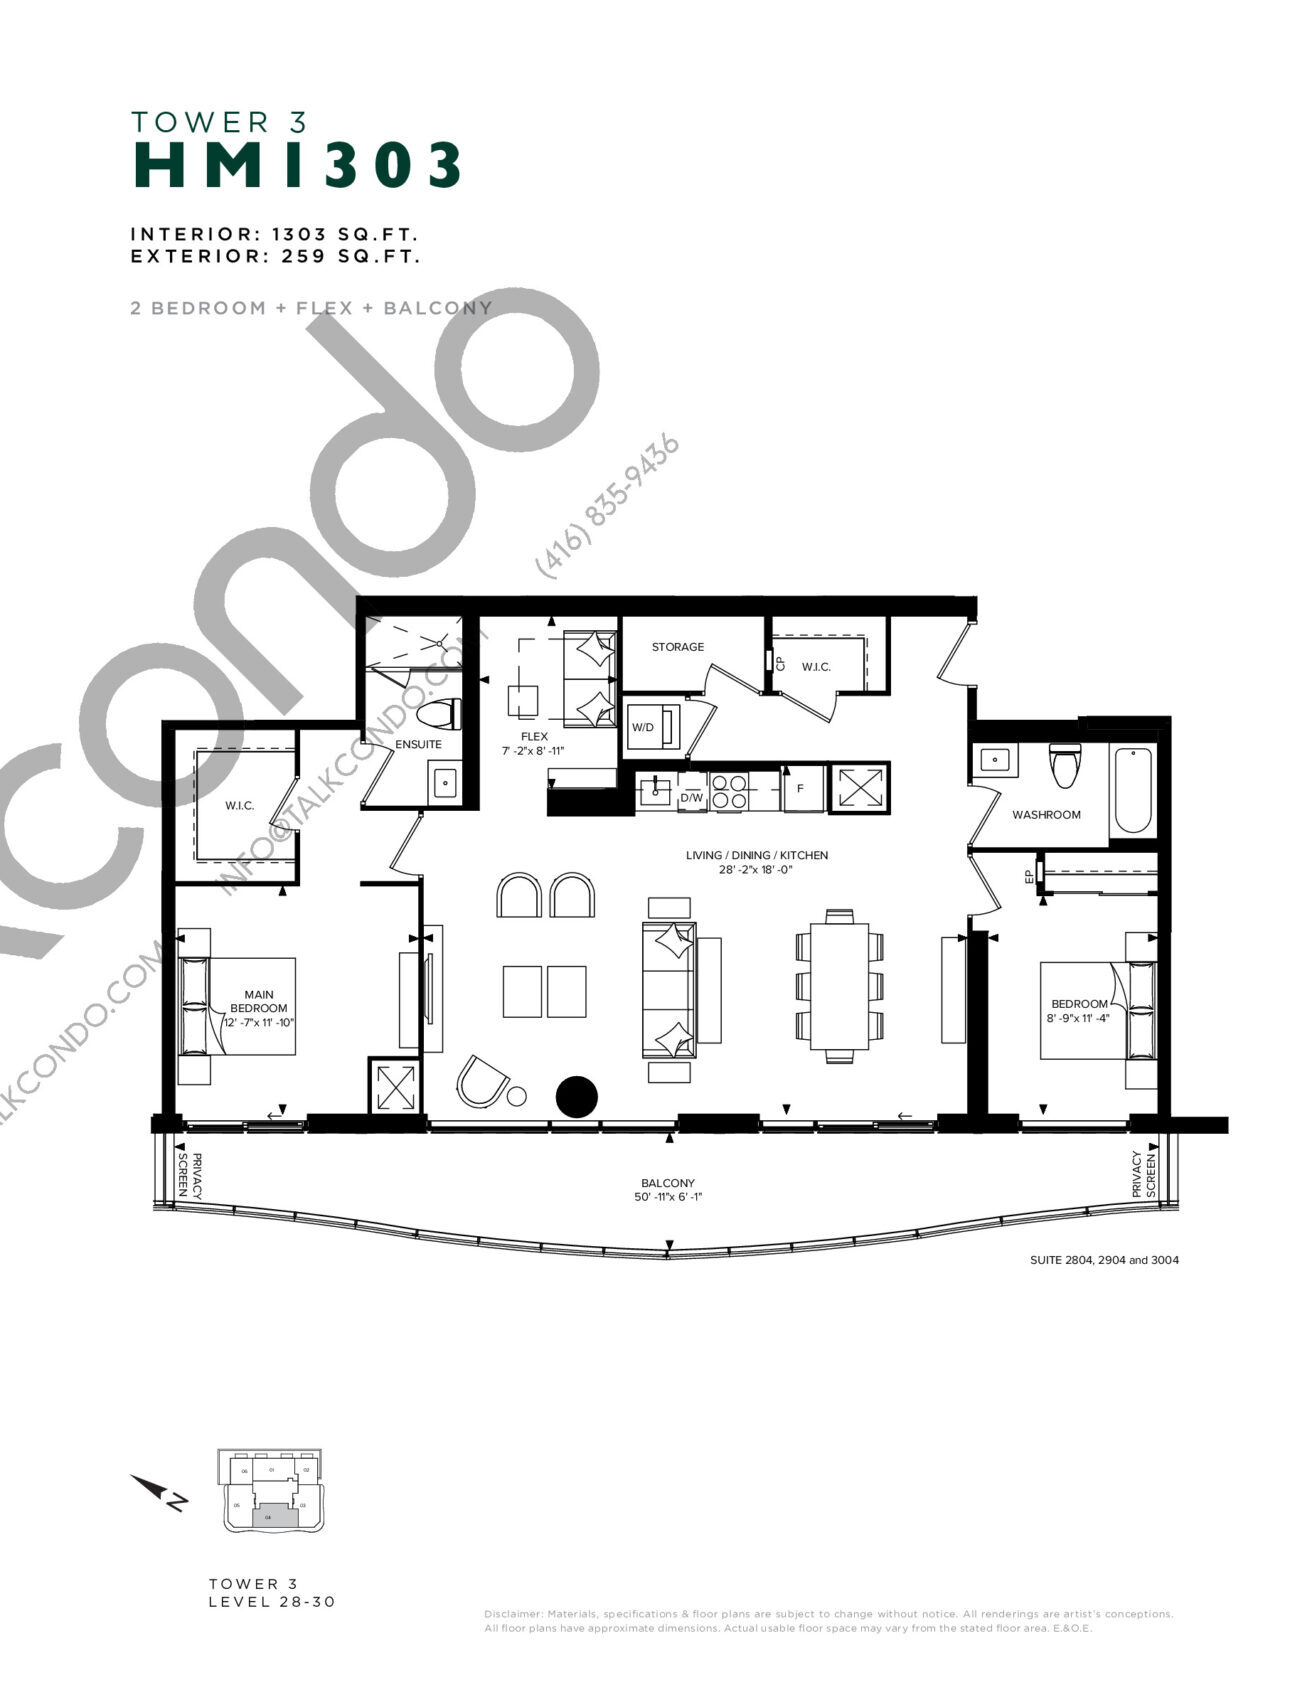 HM 1303 (Tower 3) Floor Plan at Hillmont at SXSW Condos - 1303 sq.ft